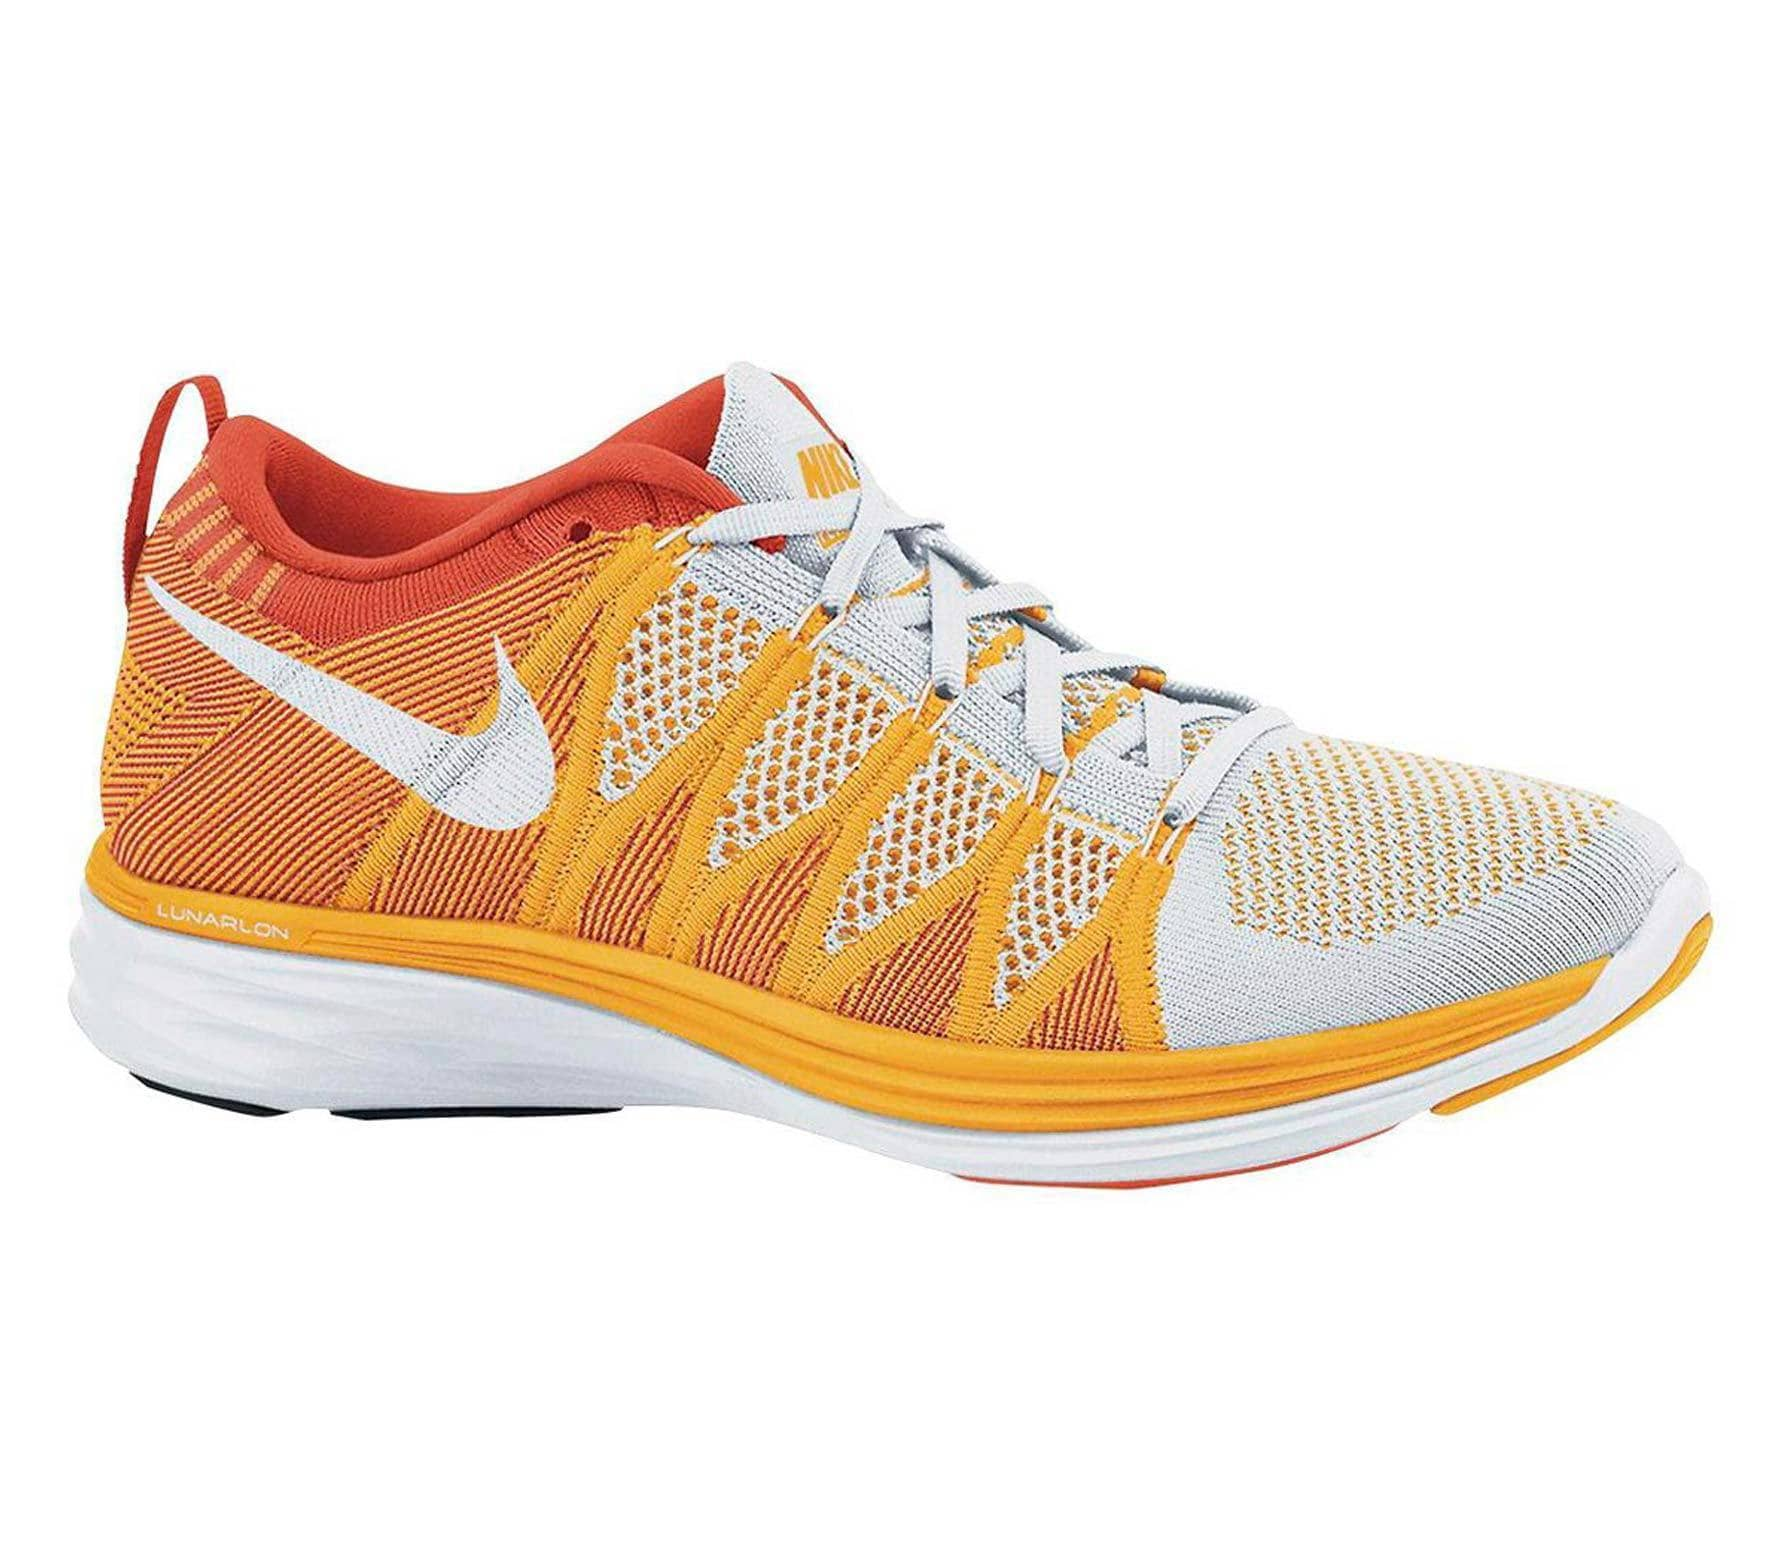 new products ea1a1 d2431 Nike - Flyknit Lunar 2 women s running shoes (white orange)